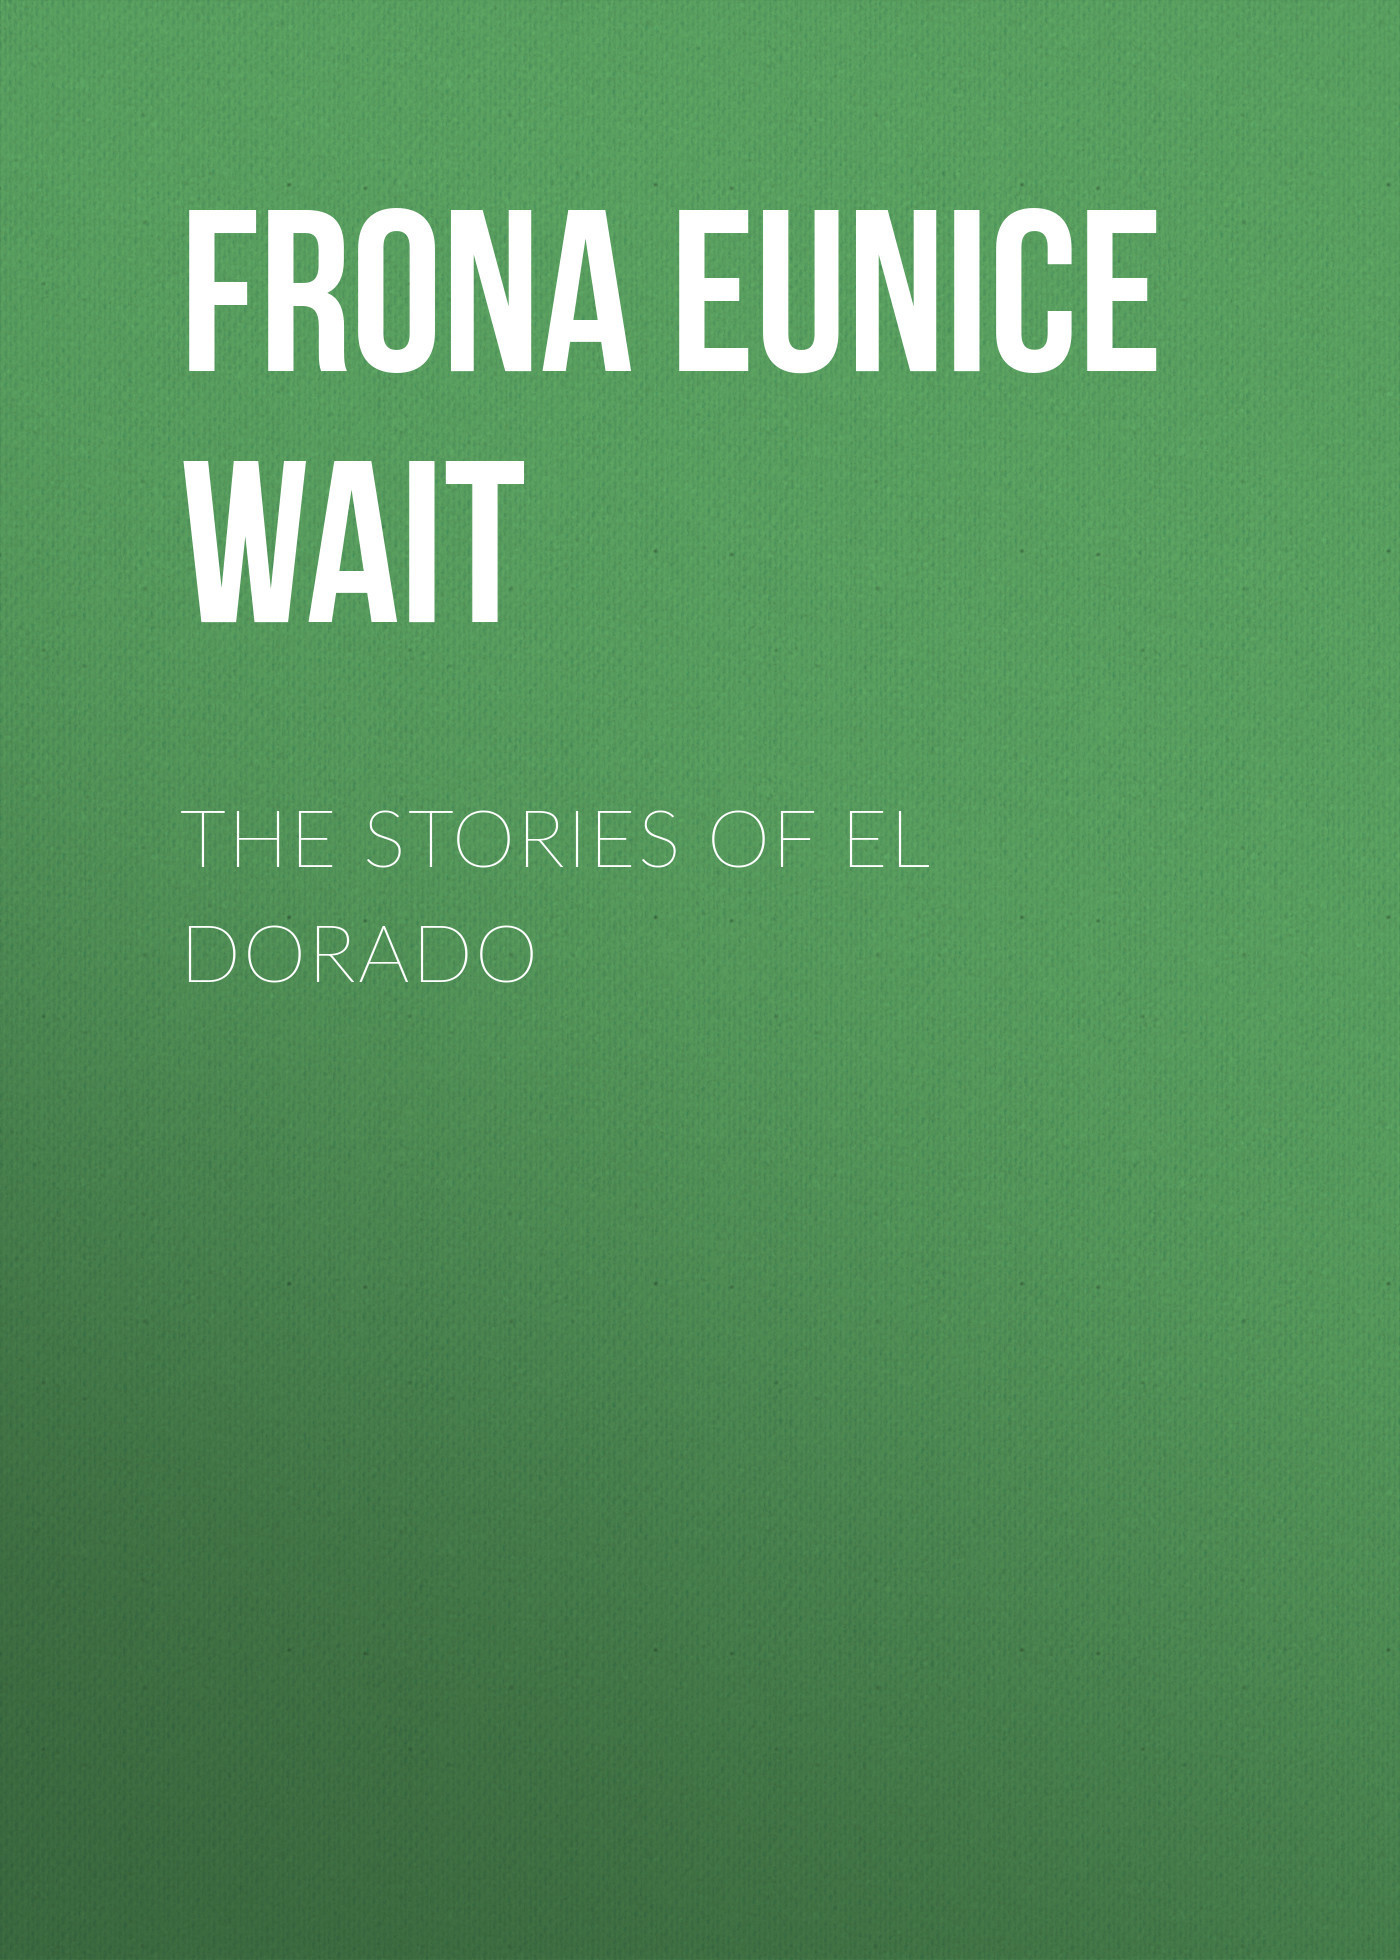 все цены на Frona Eunice Wait The Stories of El Dorado онлайн